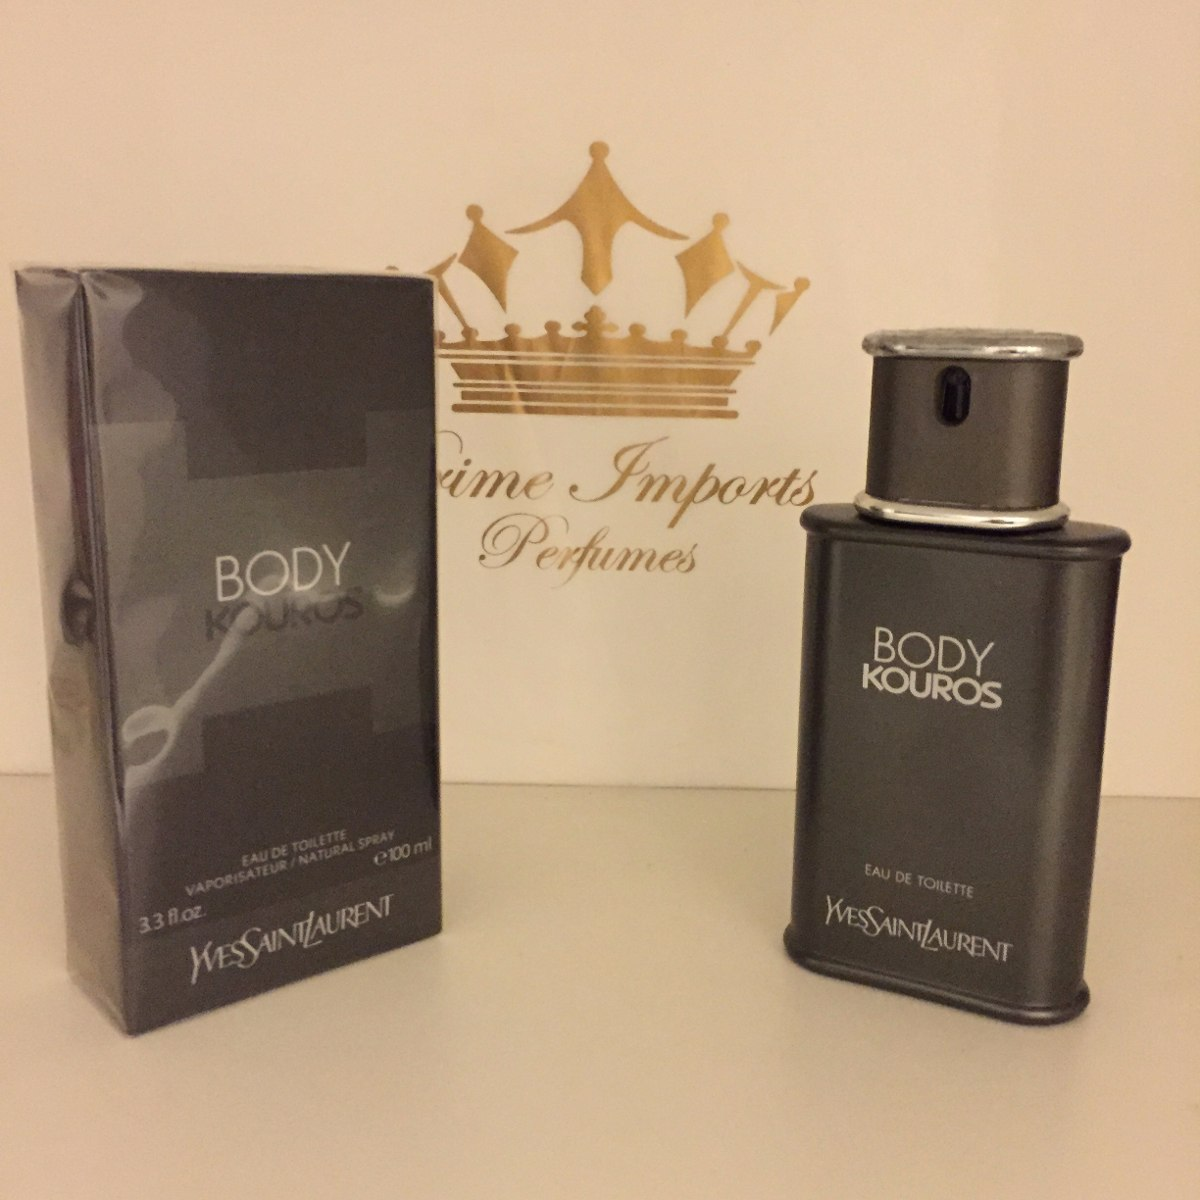 Perfumes Body Kouros: Yves Saint Laurent- Masculino- Original